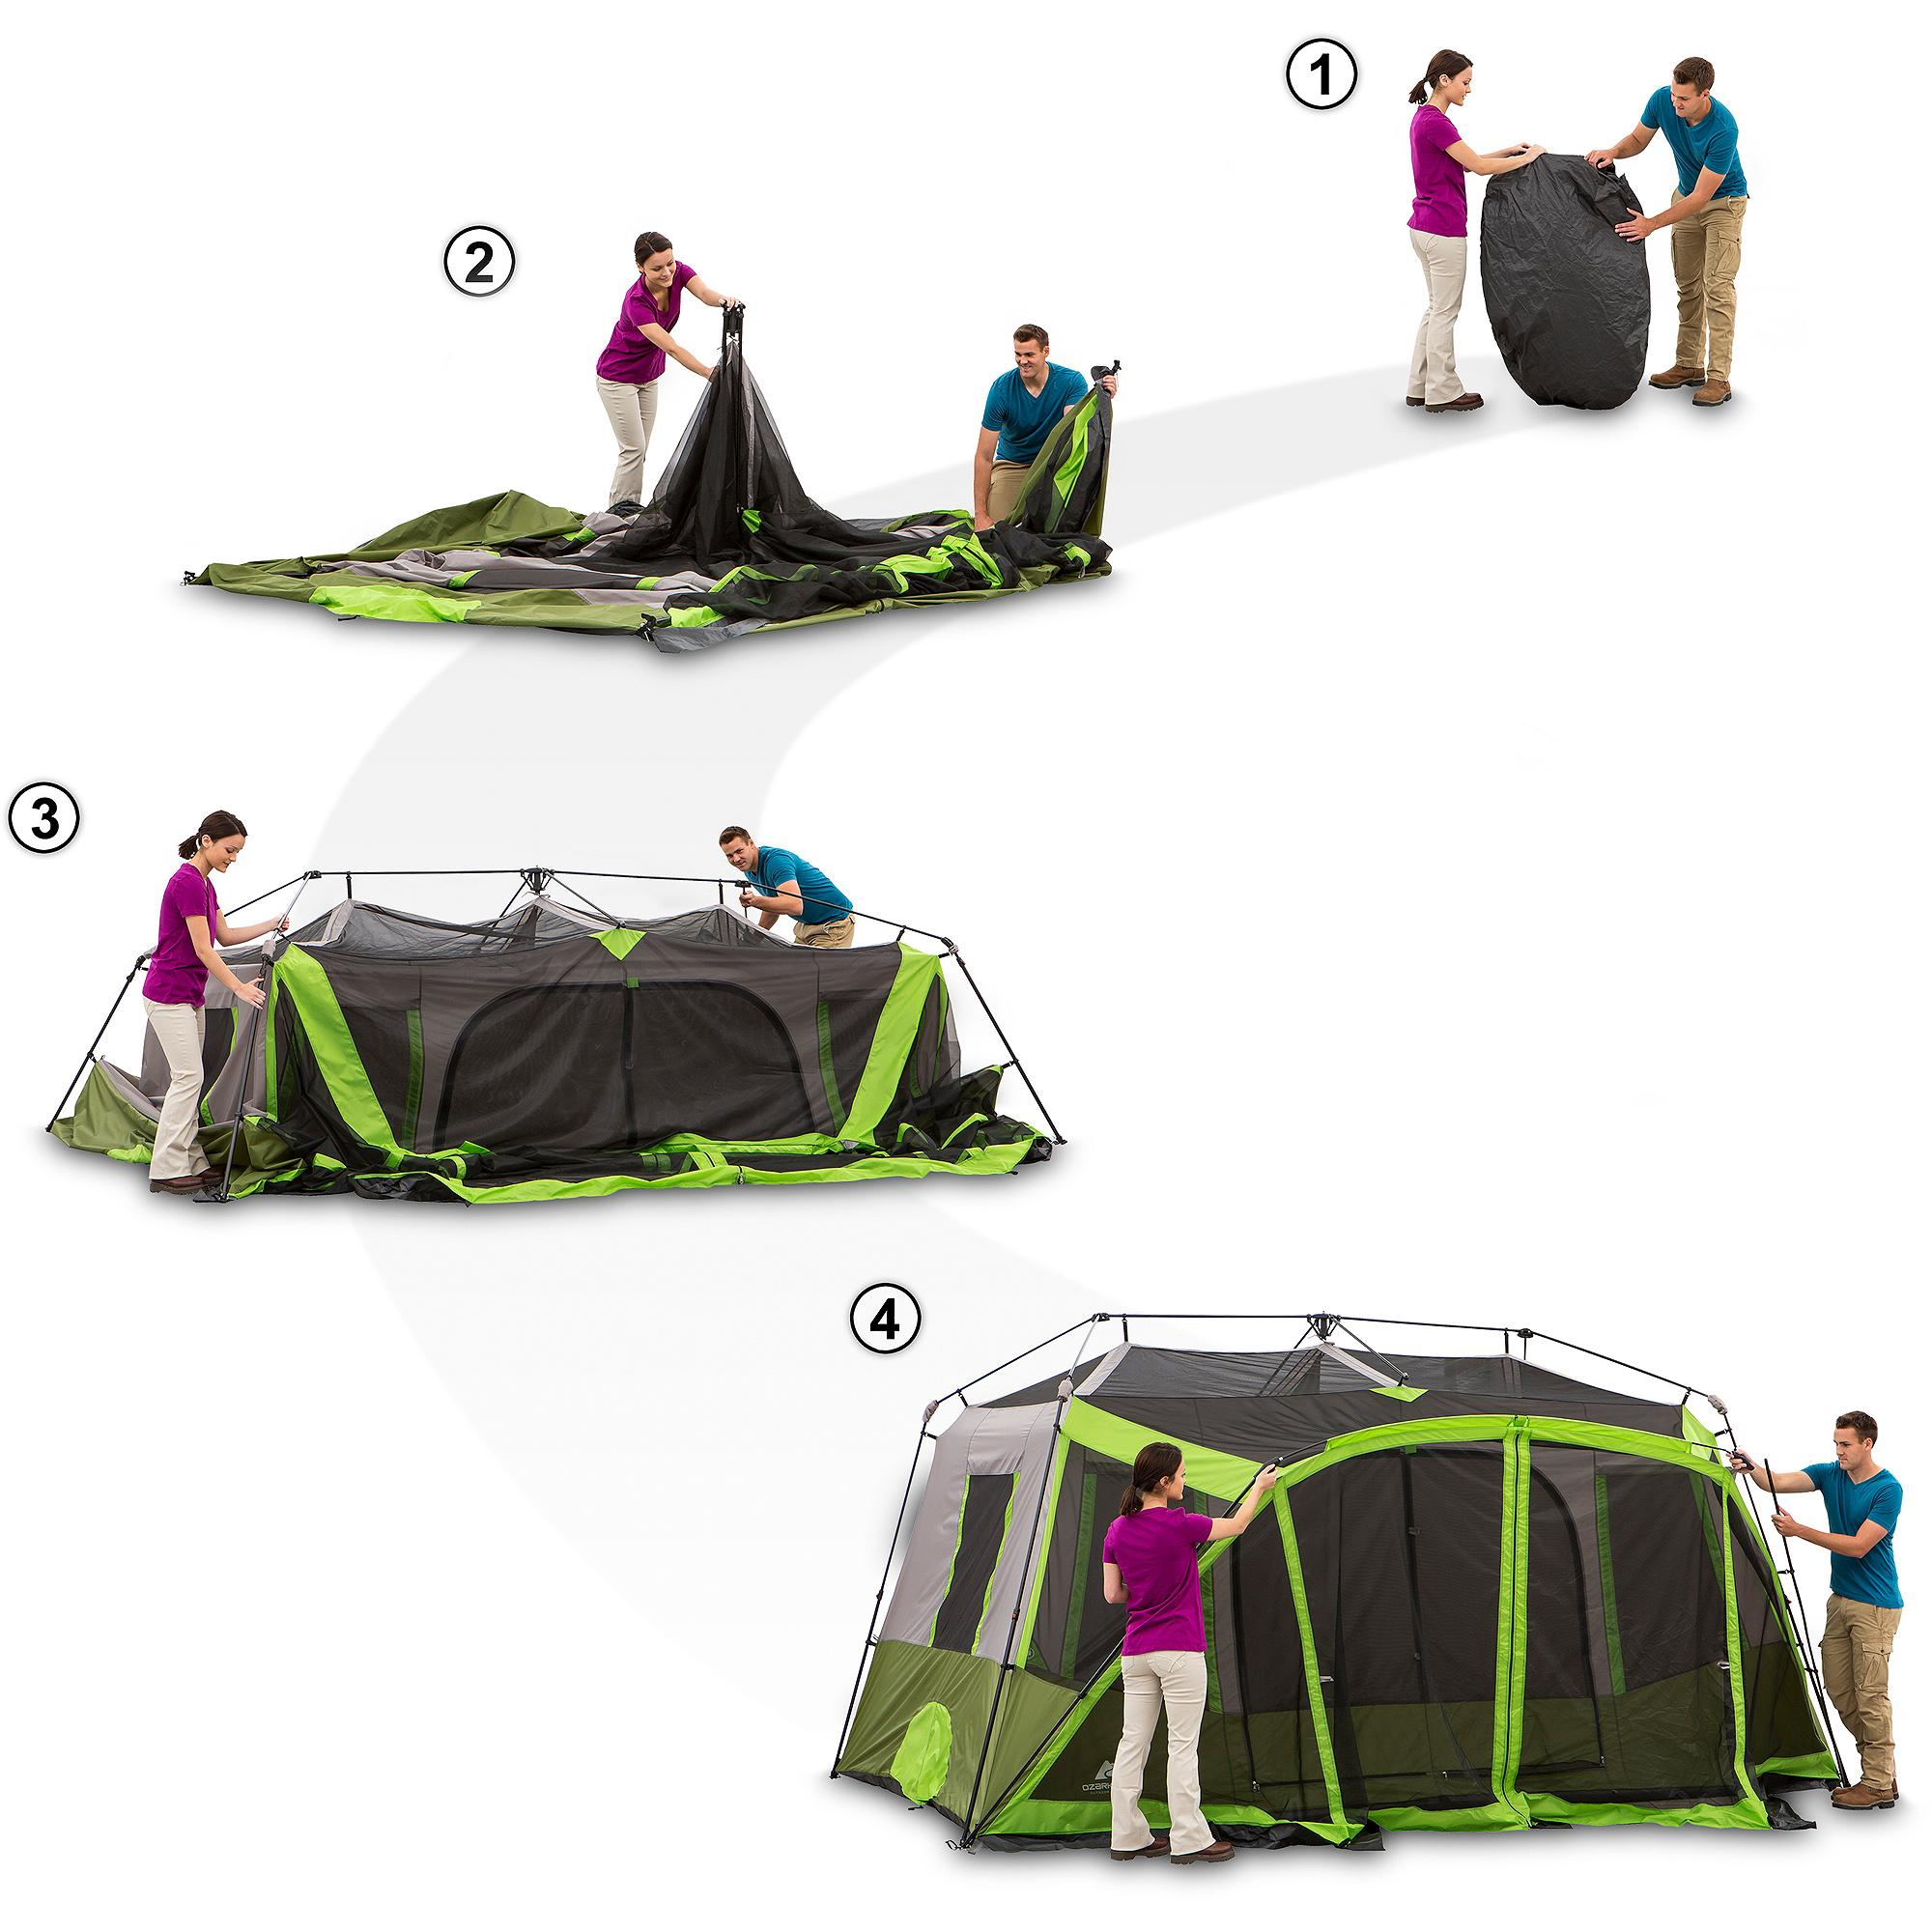 Ozark trail 6 person instant cabin tent instructions